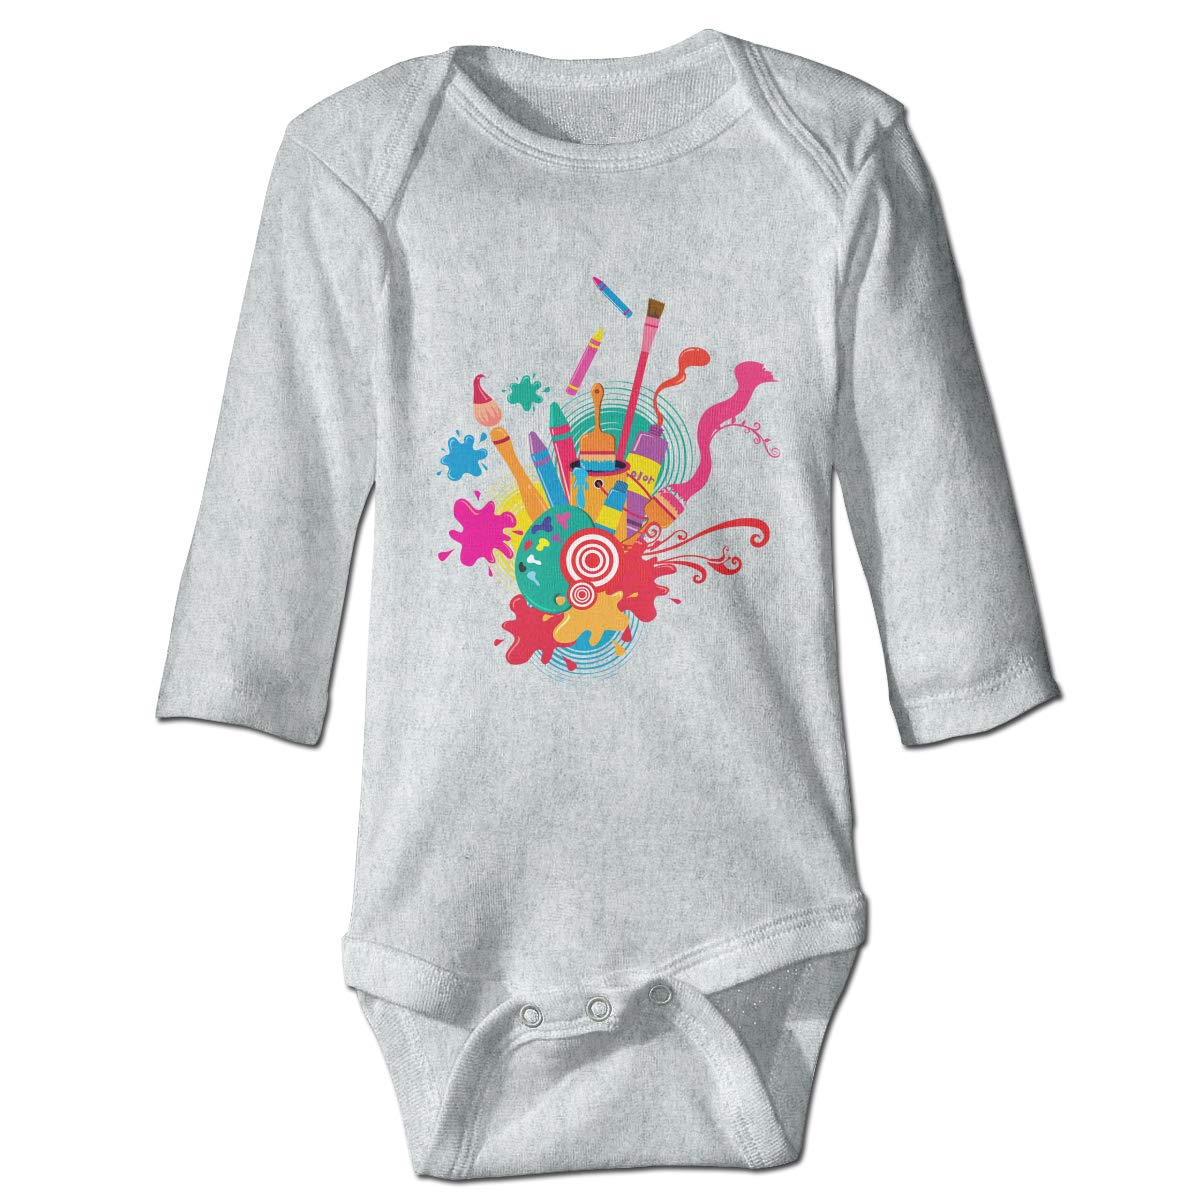 Dfenere Paints and Watercolor Pens Hip Hop Newborn Baby Long Sleeve Bodysuit Romper Infant Summer Clothing